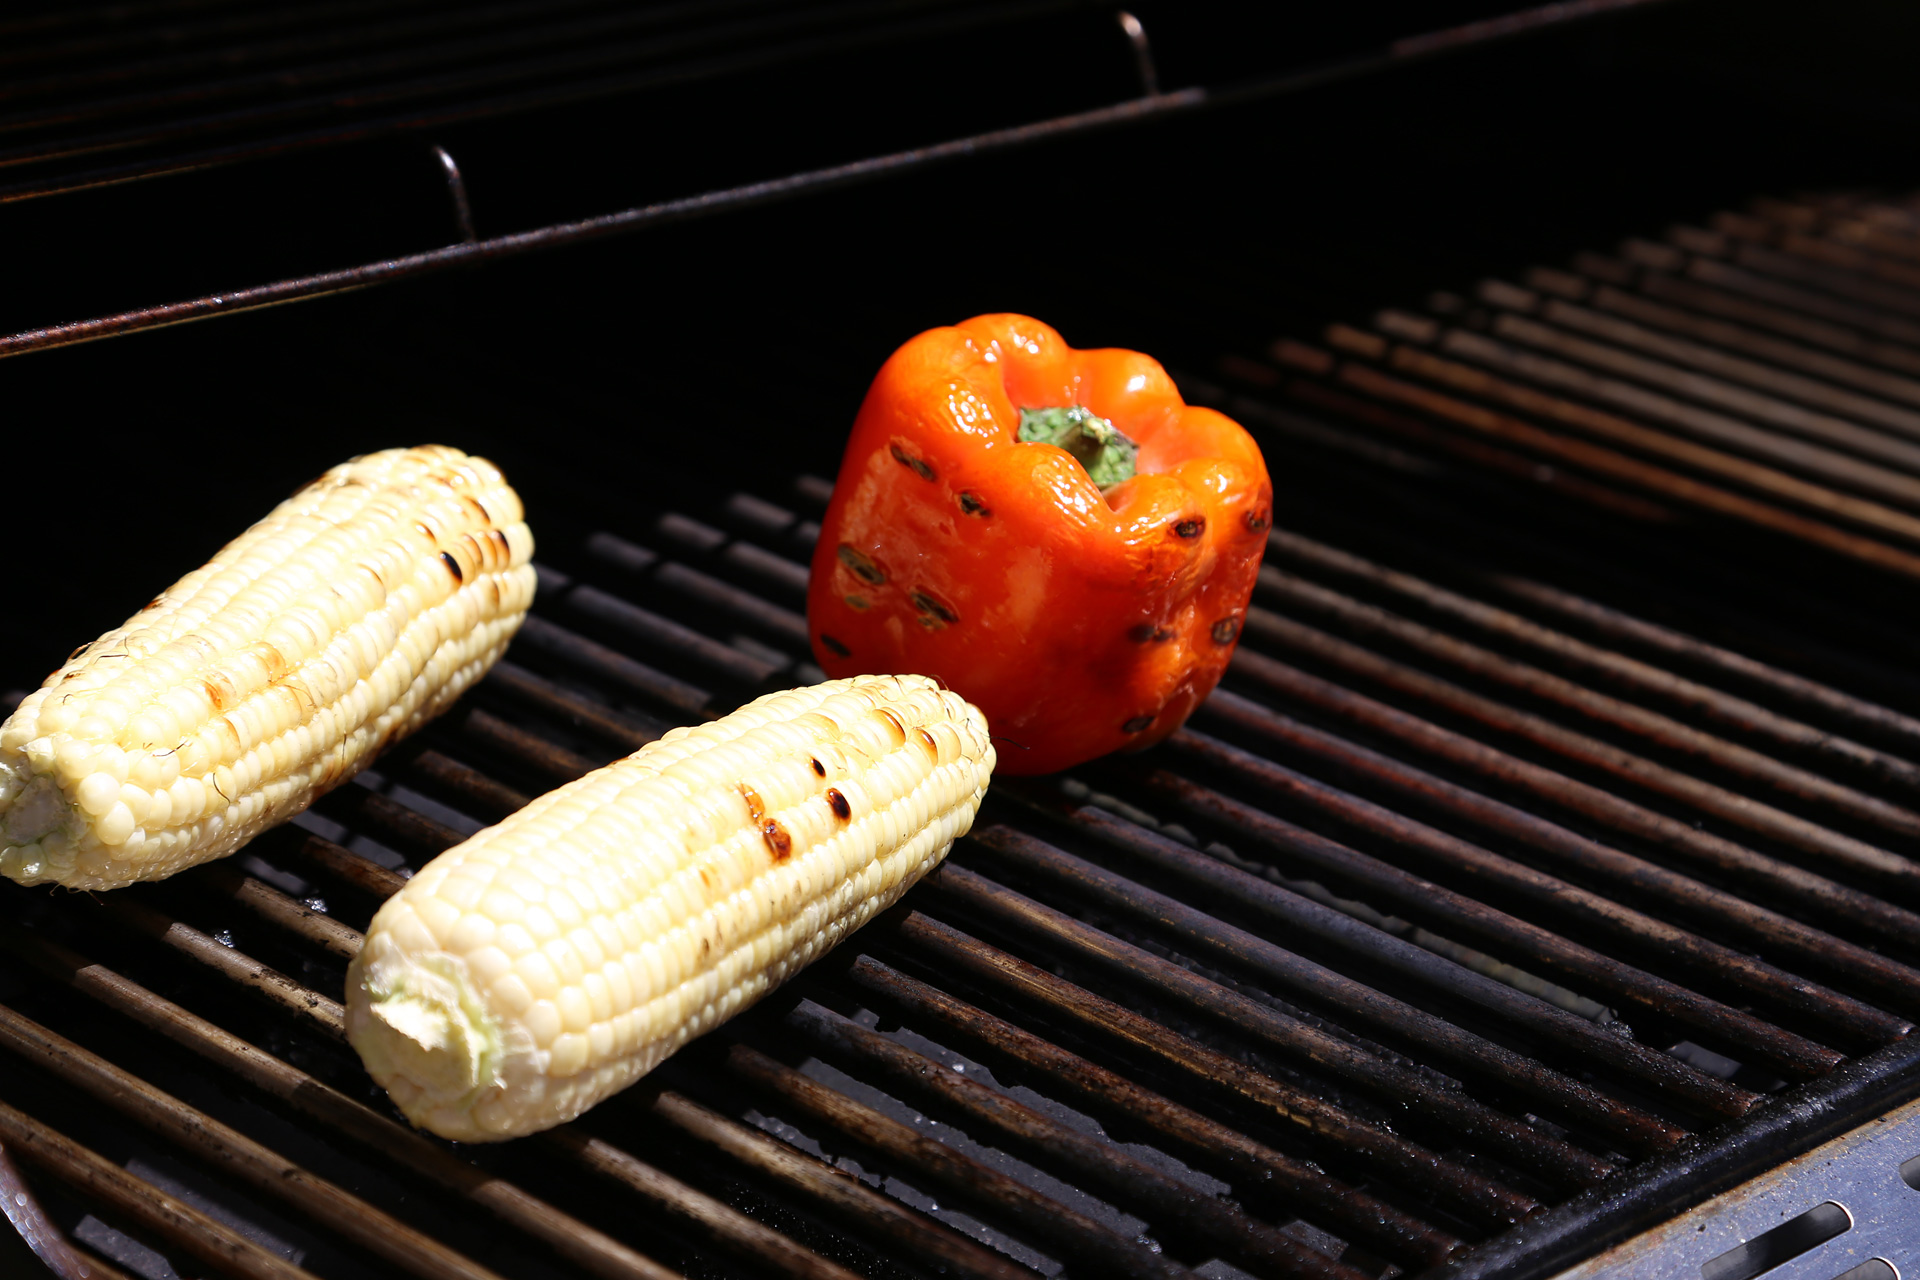 Grill the vegetables until charred.